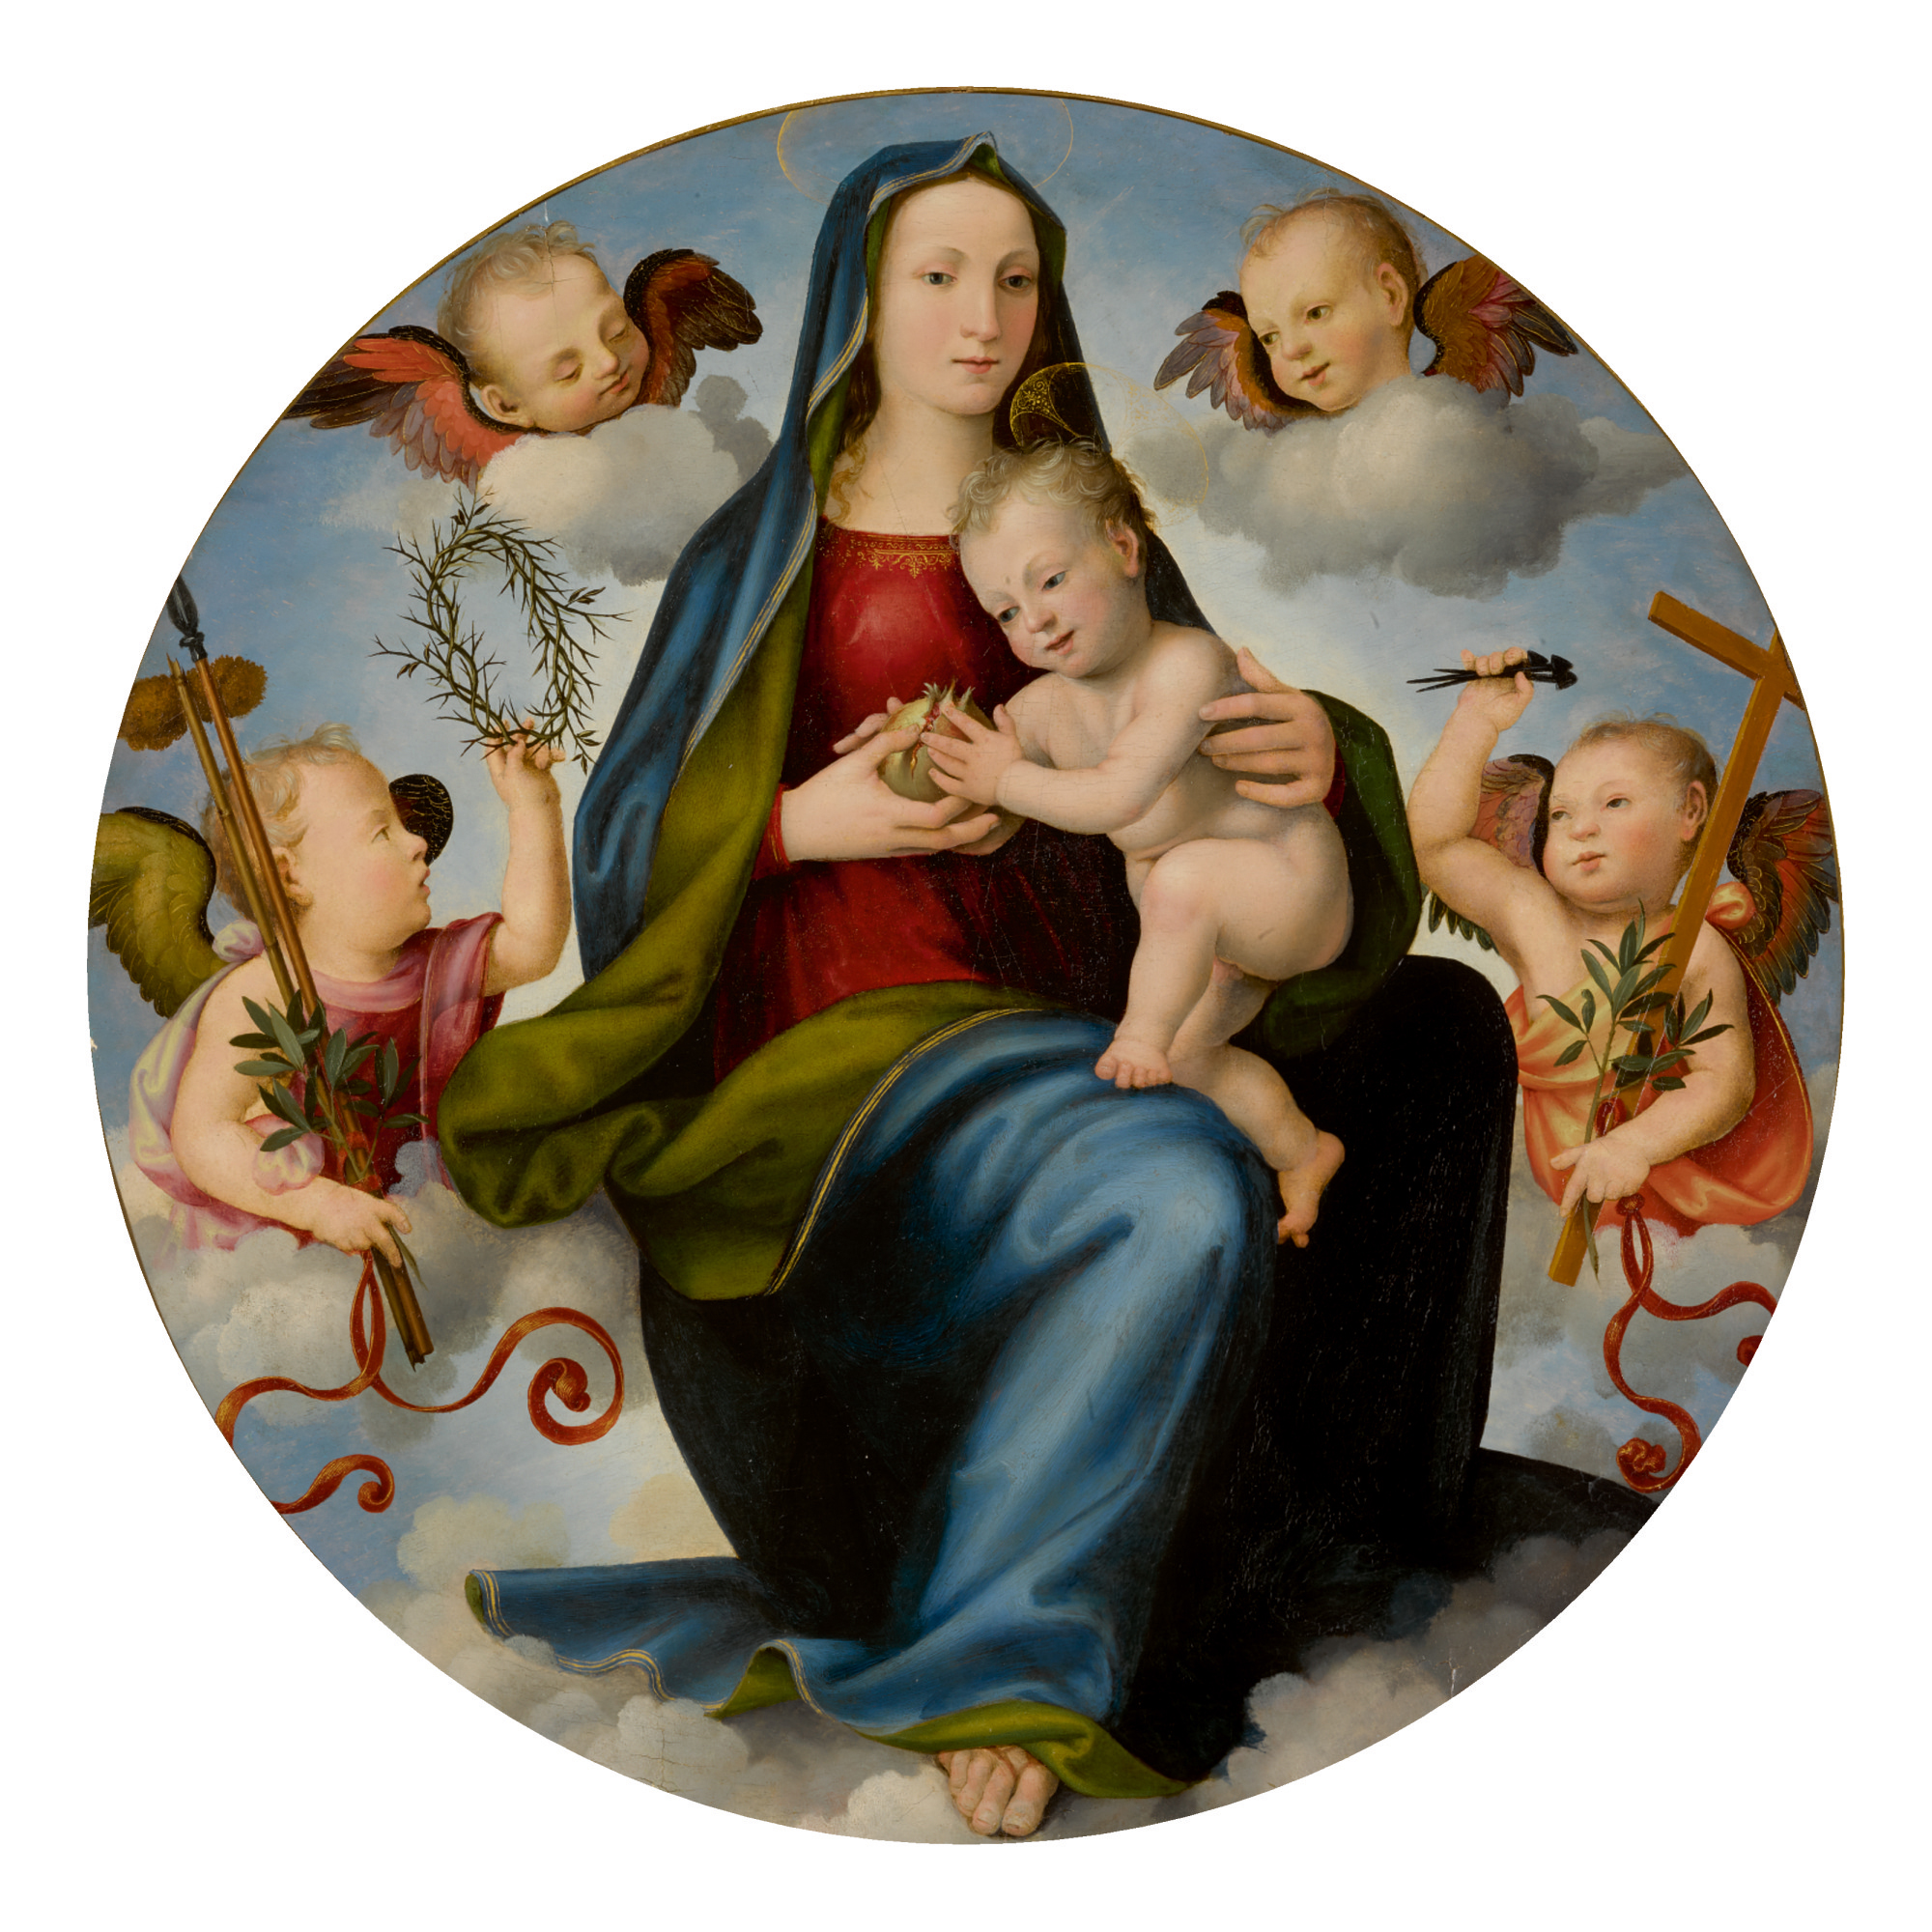 Sold Without Reserve | MARIOTTO DI BIAGIO DI BINDO ALBERTINELLI | MADONNA AND CHILD ENTHRONED IN THE CLOUDS, SURROUNDED BY TWO ANGELS HOLDING INSTRUMENTS OF THE PASSION AND TWO CHERUBIM